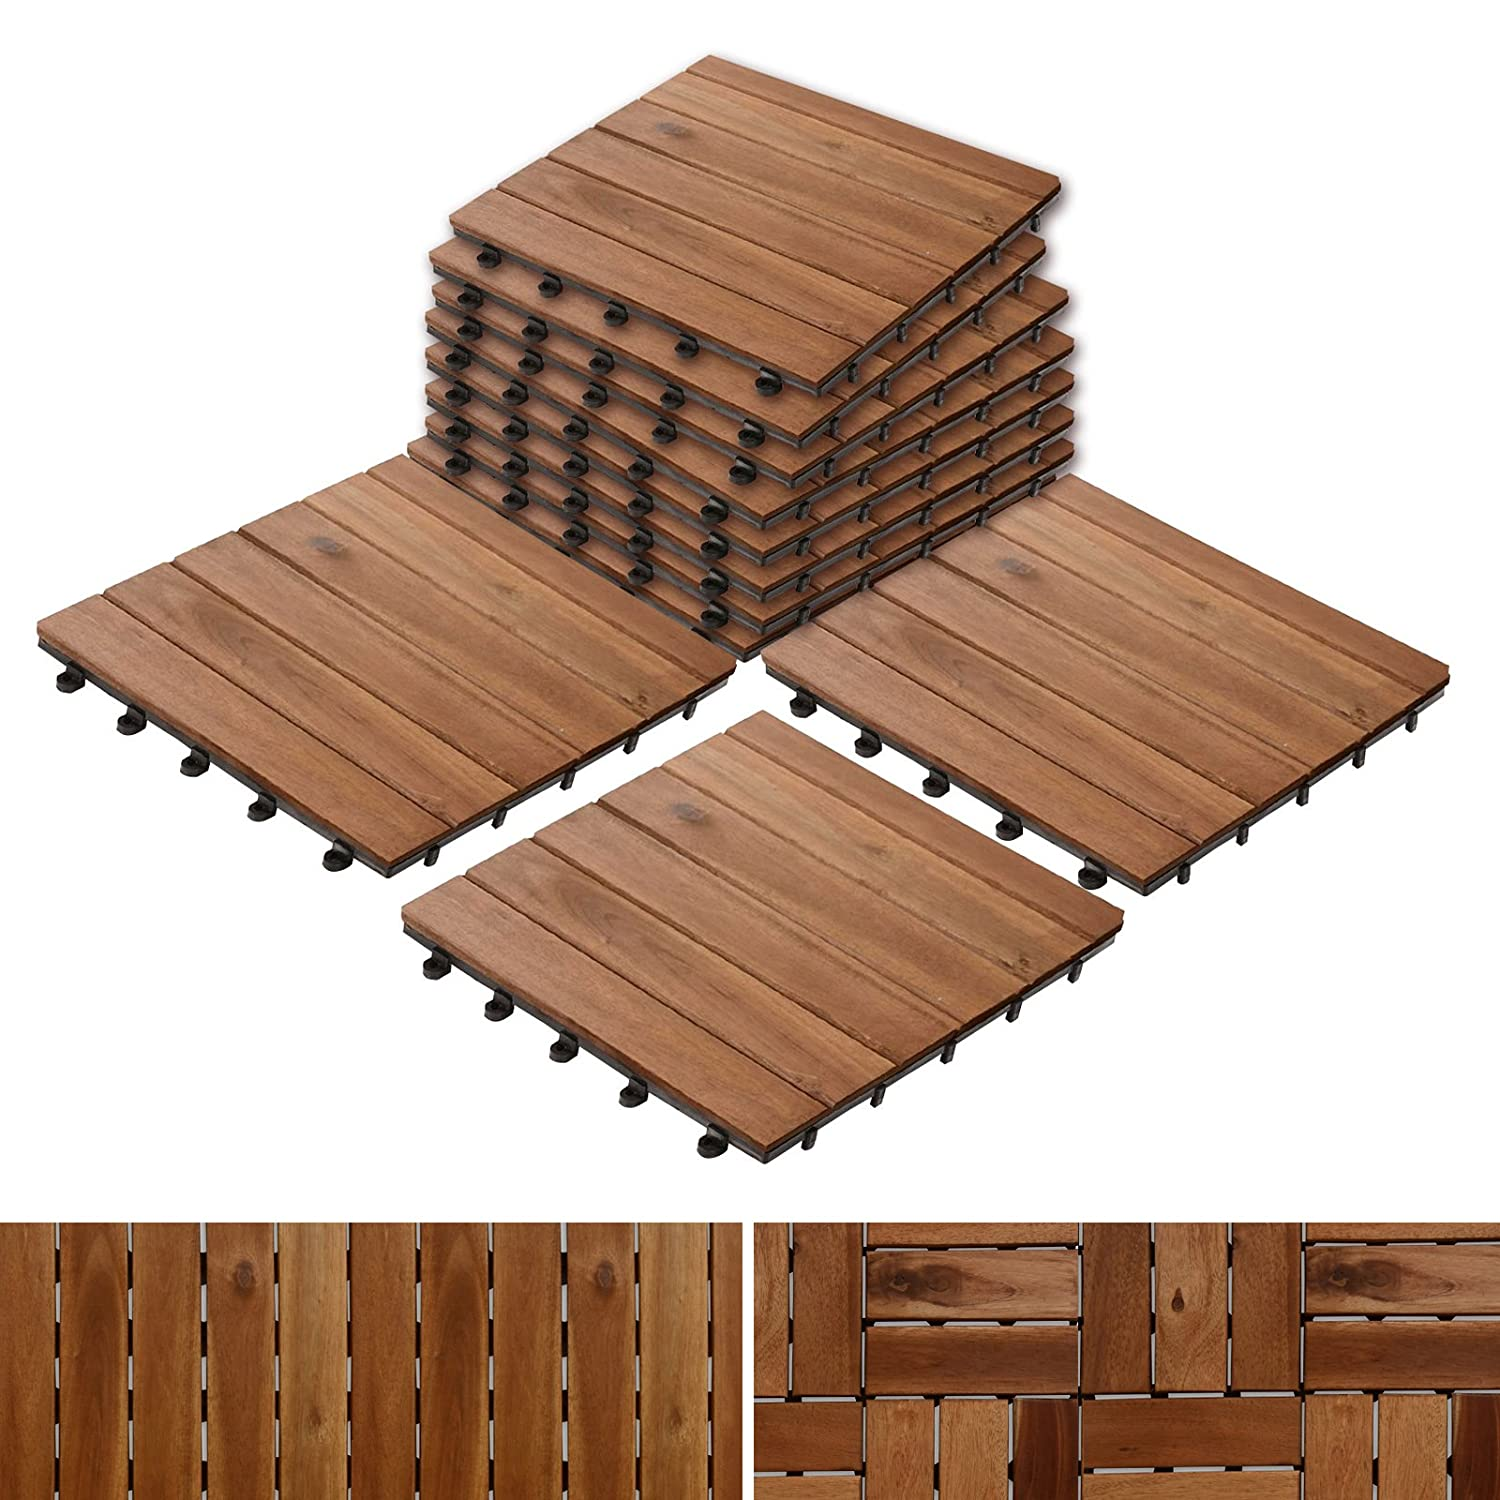 Patio Pavers Composite Decking Flooring And Deck Tiles